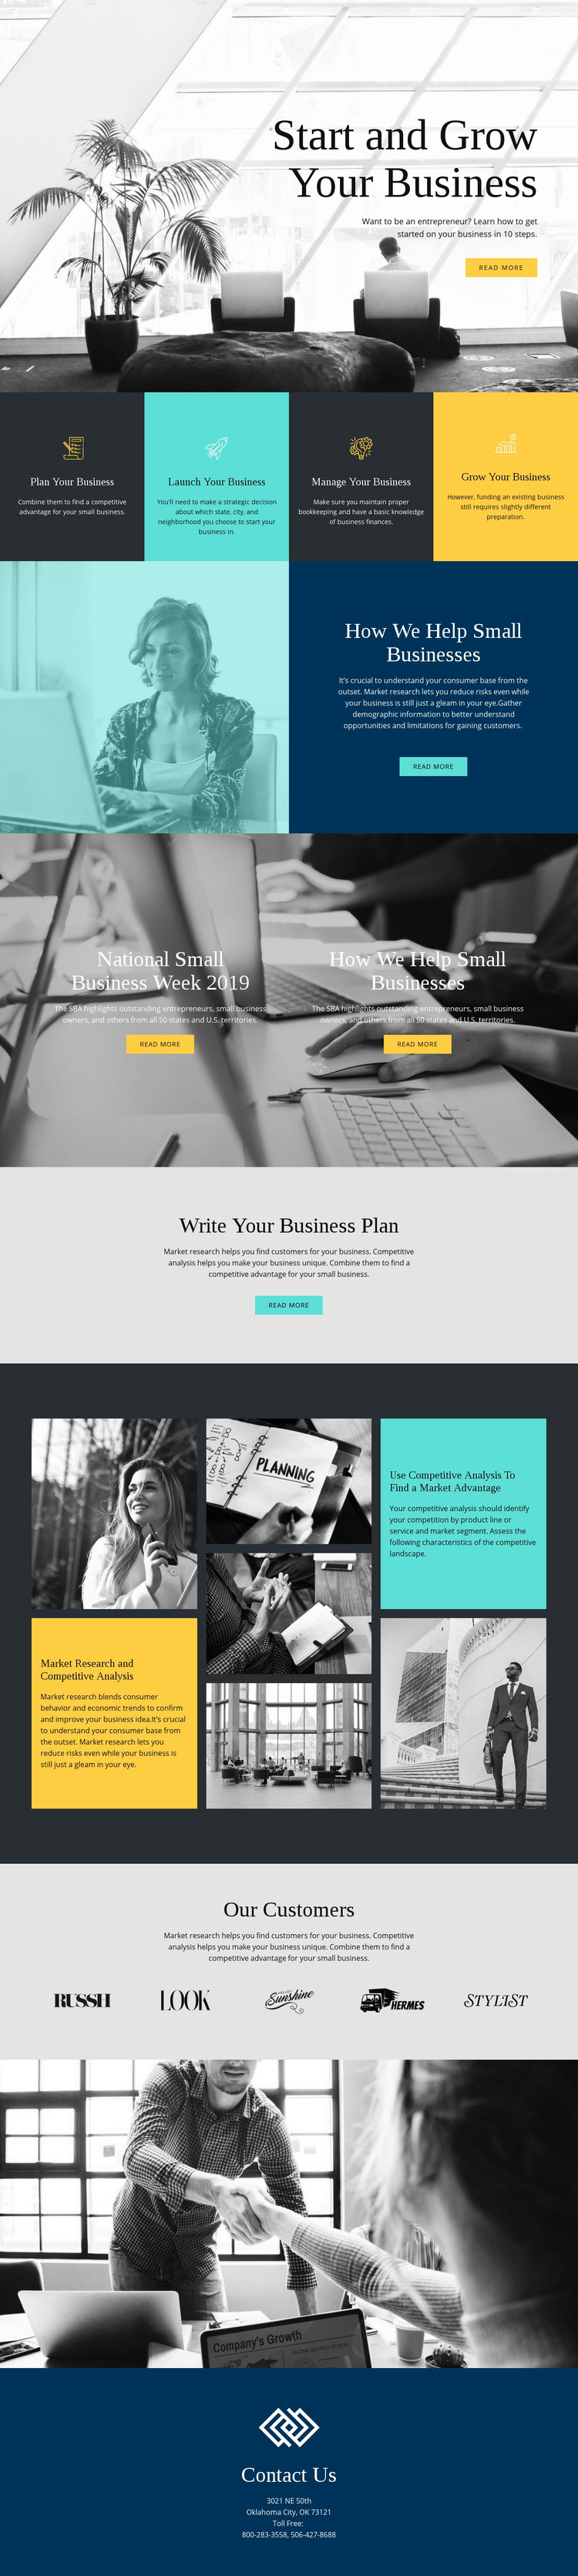 Start and grow your business Homepage Design